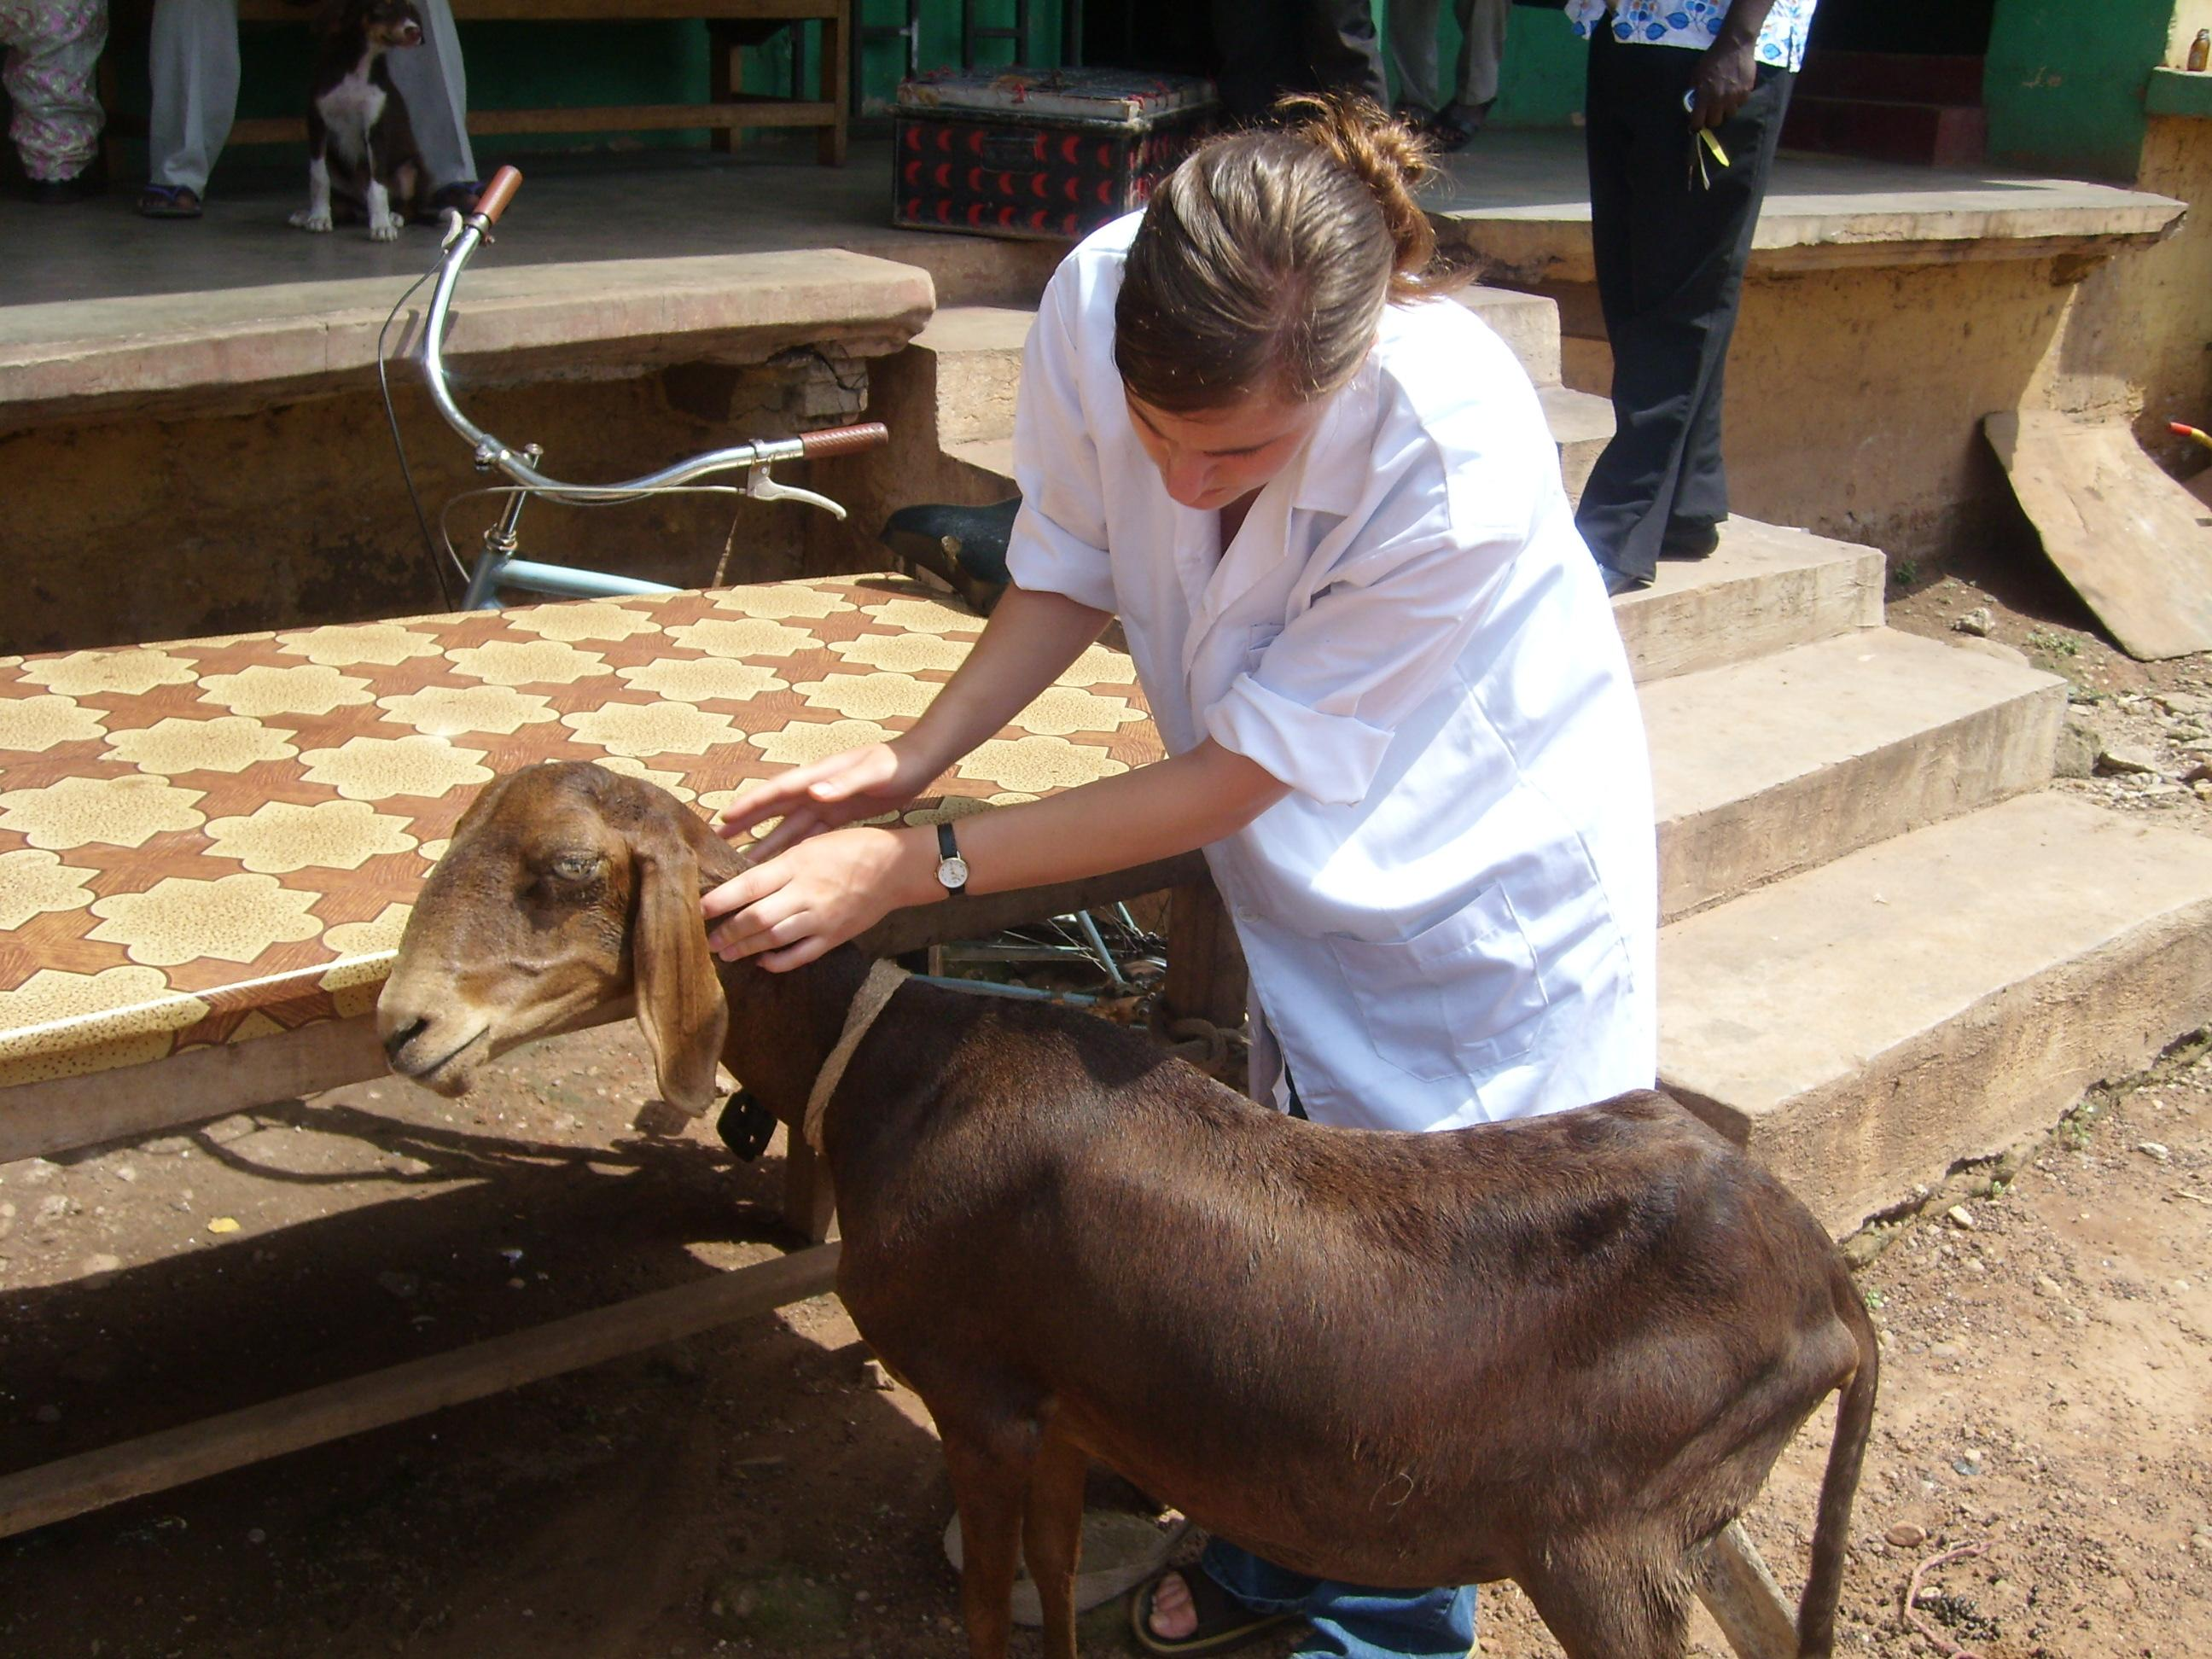 A student volunteering with animals in Argentina scrubs water bowls at a local animal shelter.